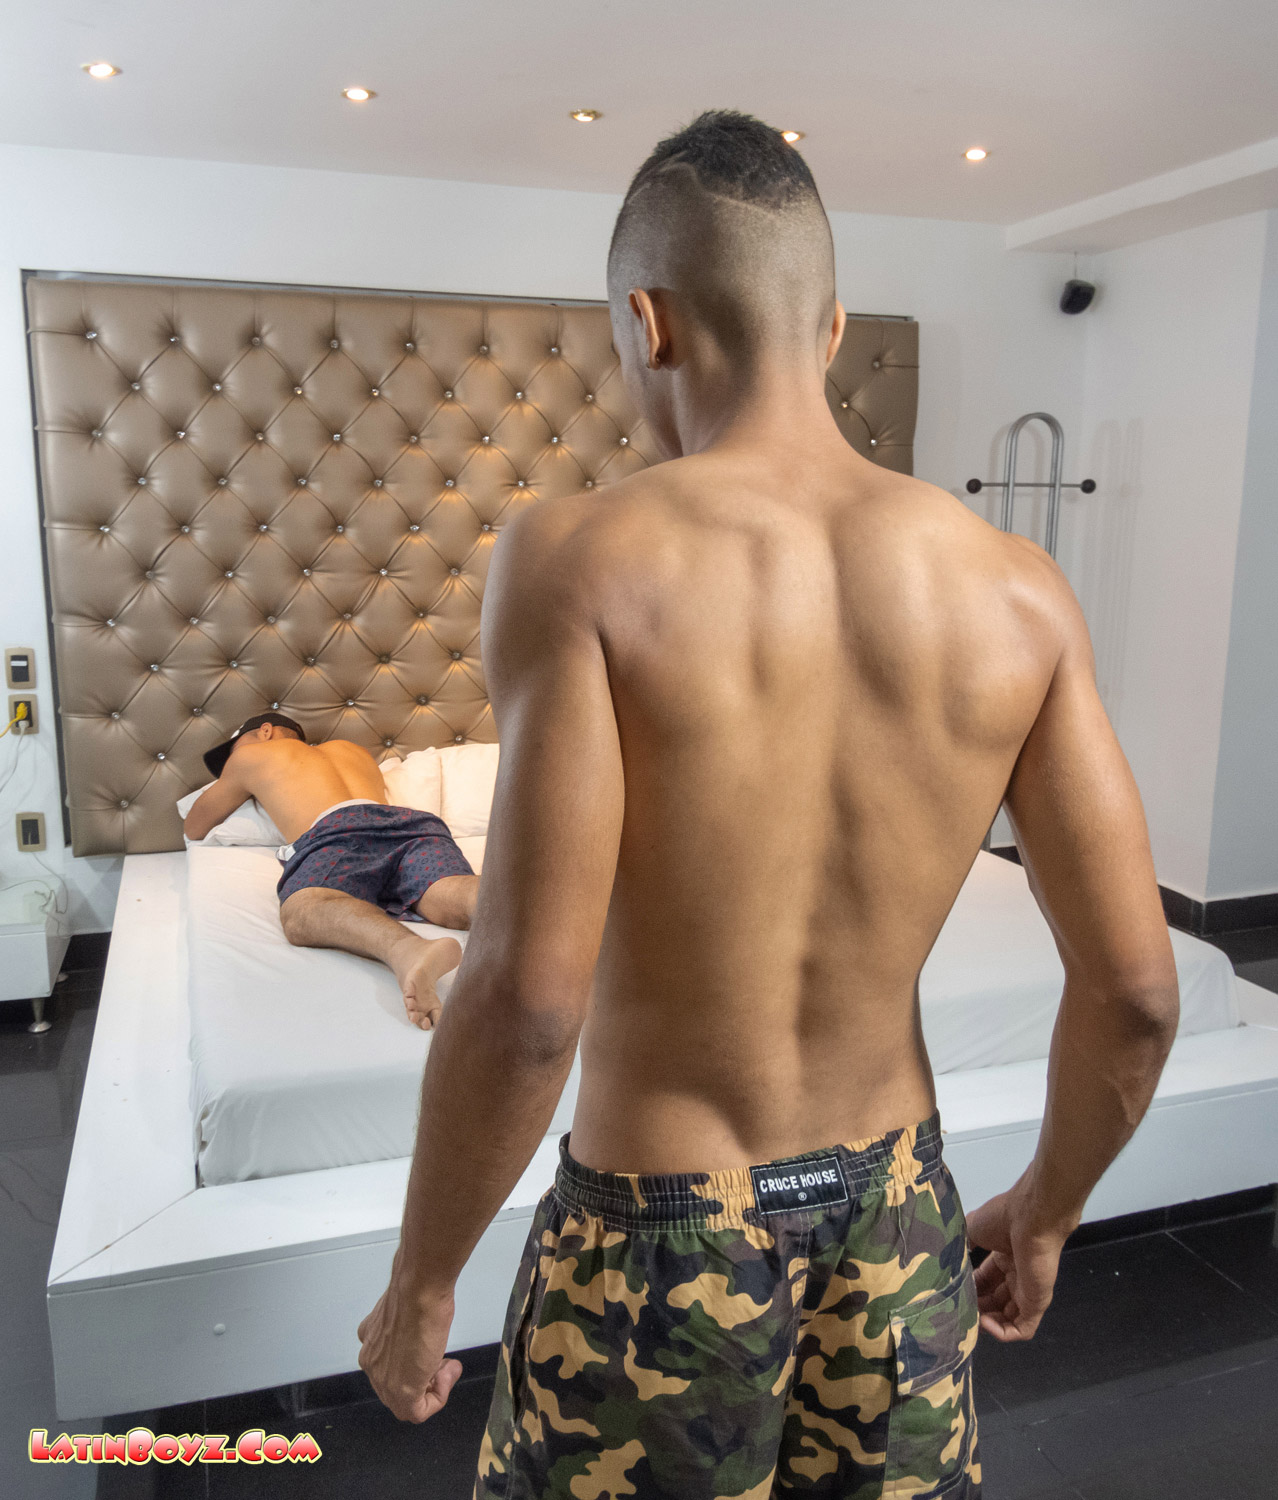 Juliano and Angelo are getting ready to fuck Latin sex bareback style